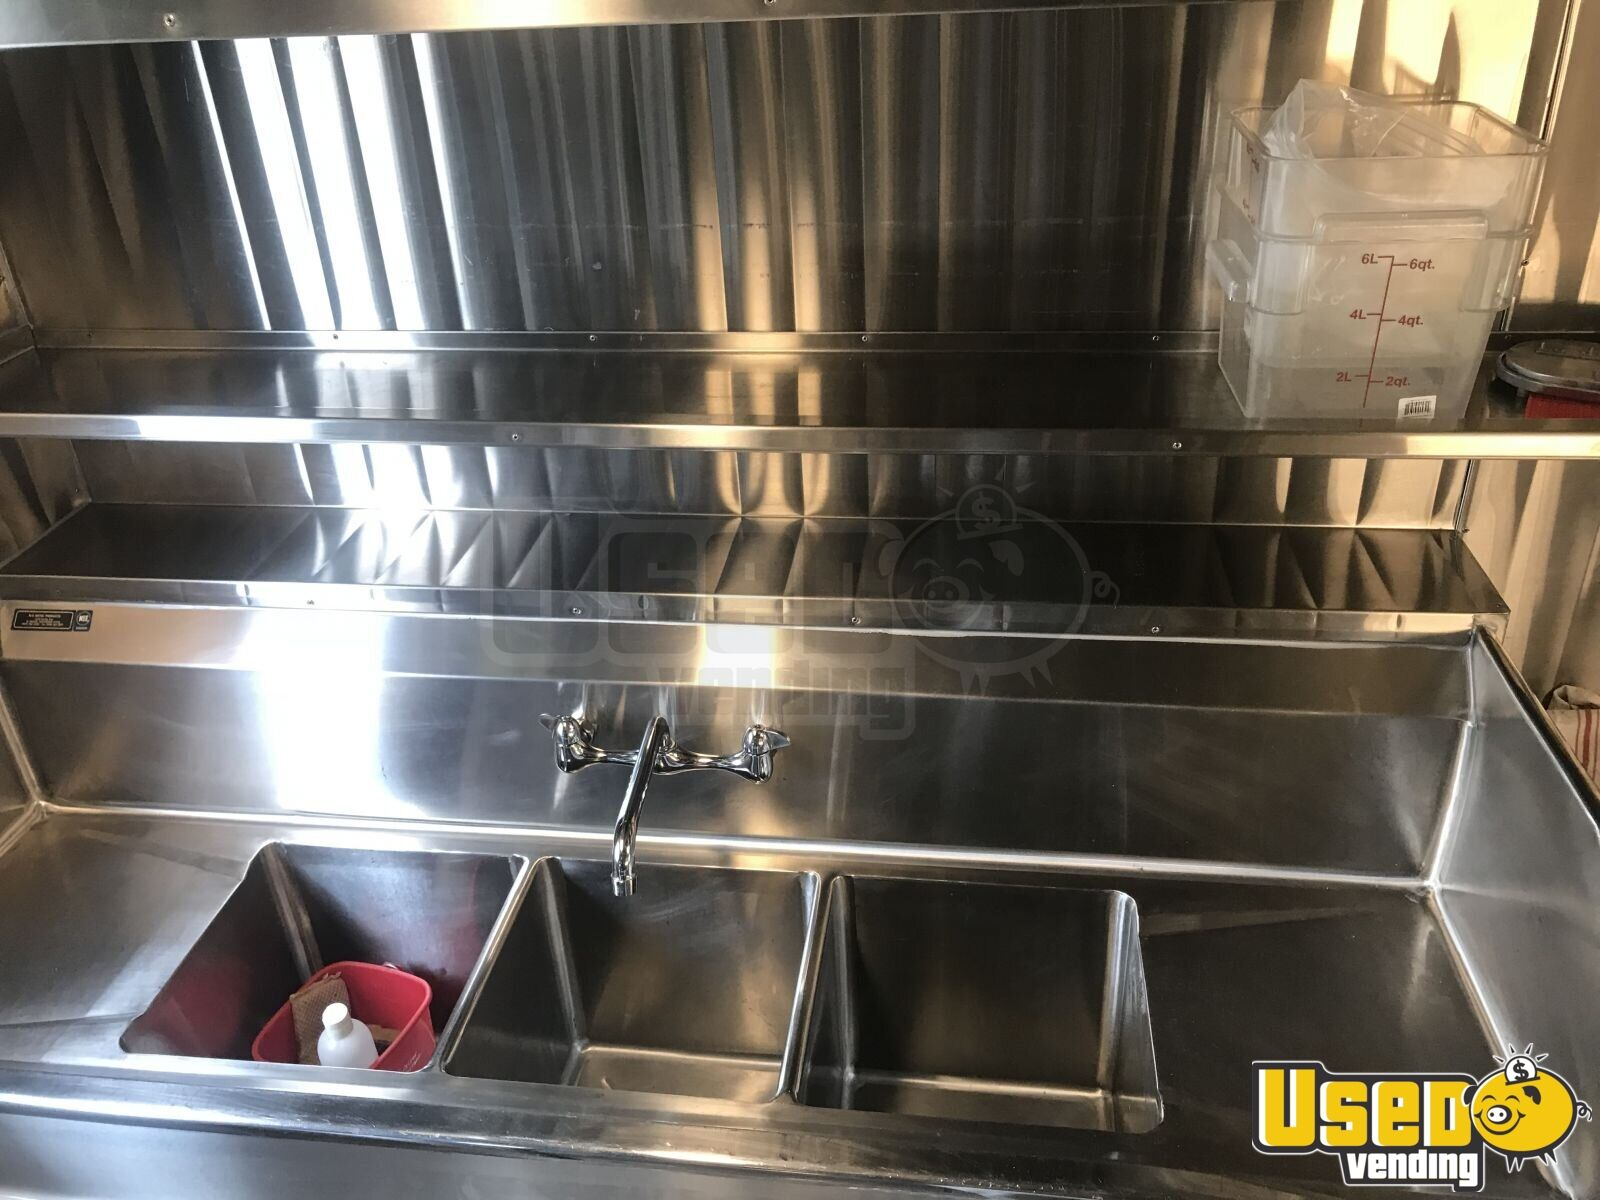 1989 Gmc Food Truck Exterior Customer Counter California Gas Engine for Sale - 8